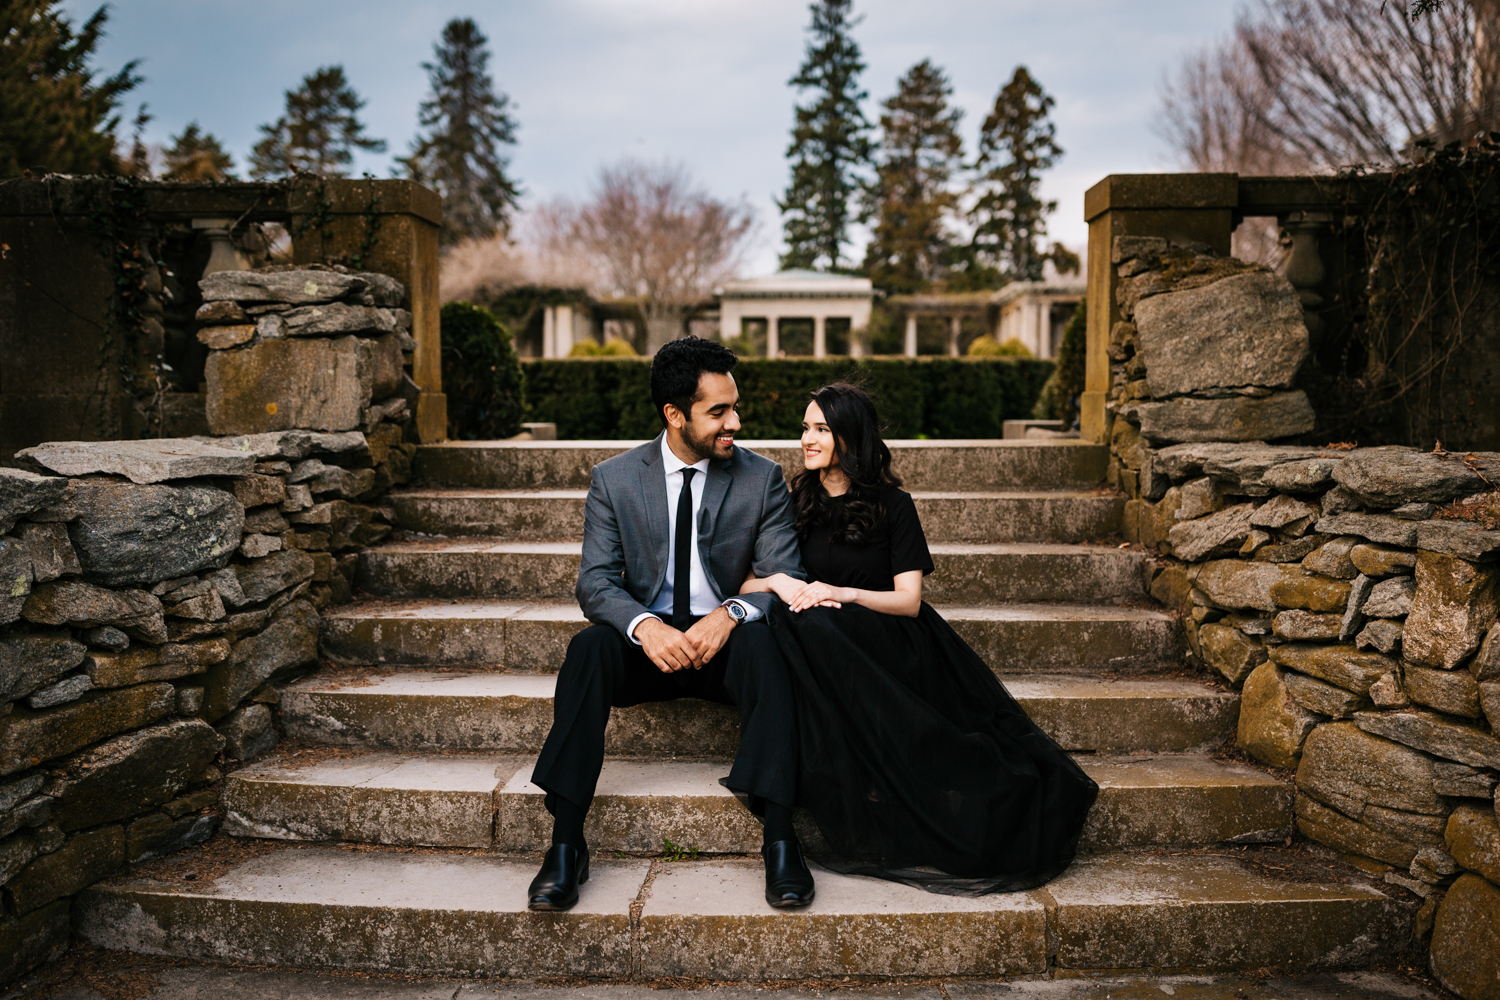 eolia-mansion-engagement-photos-waterford-connecticut.jpg